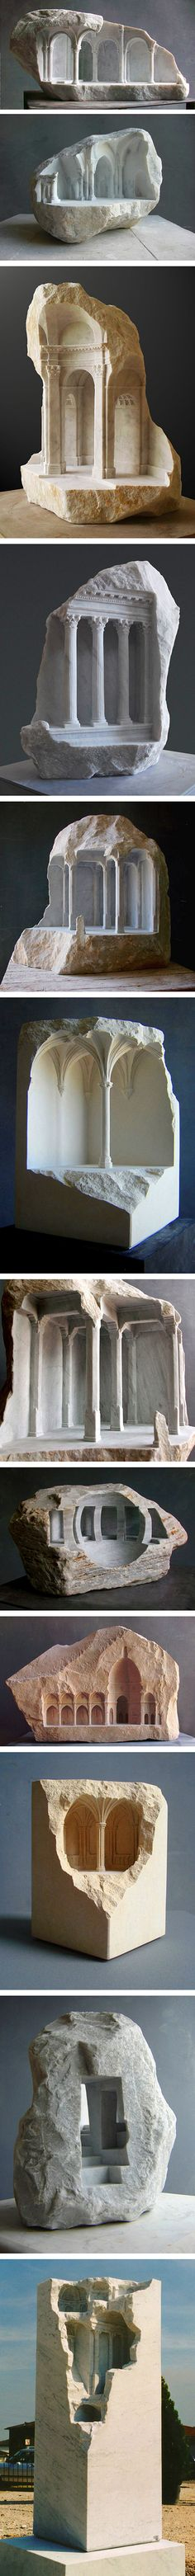 The marble sculptures by British artist Matthew Simmonds aren't your typical human forms popularized by the Ancient Greeks and Romans. Instead, he carves detailed and solitary architectural interiors into a corner or side of a hunk of stone. Simmonds leaves the natural edges of the rocks juxtaposed with his small, finished spaces. He pays homage to sacred buildings like baroque basilicas and Ancient Roman Temples by depicting some of their defining features like domed-roofs and elaborate…